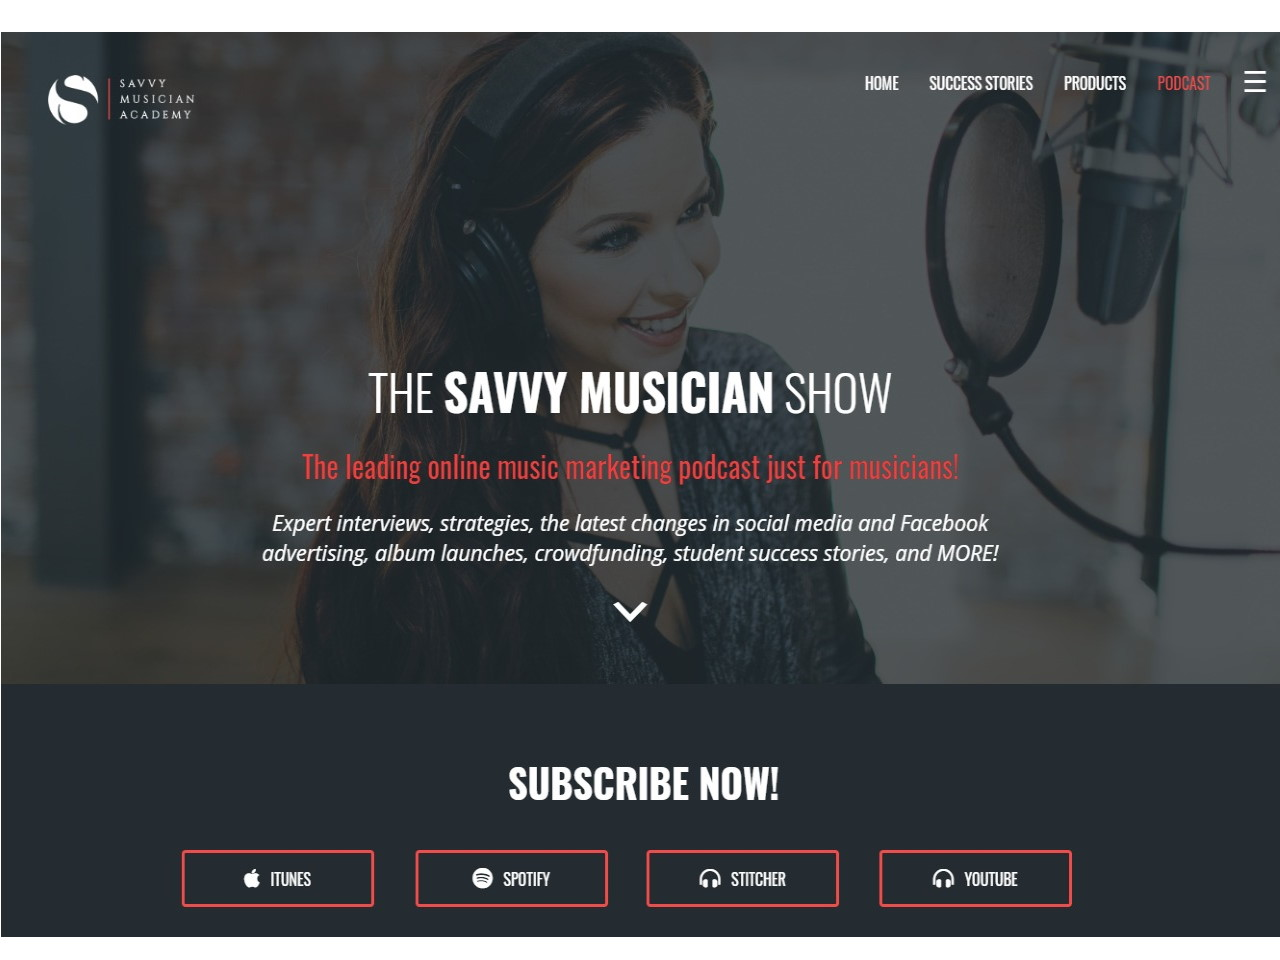 New Podcast Savvy Musician Academy